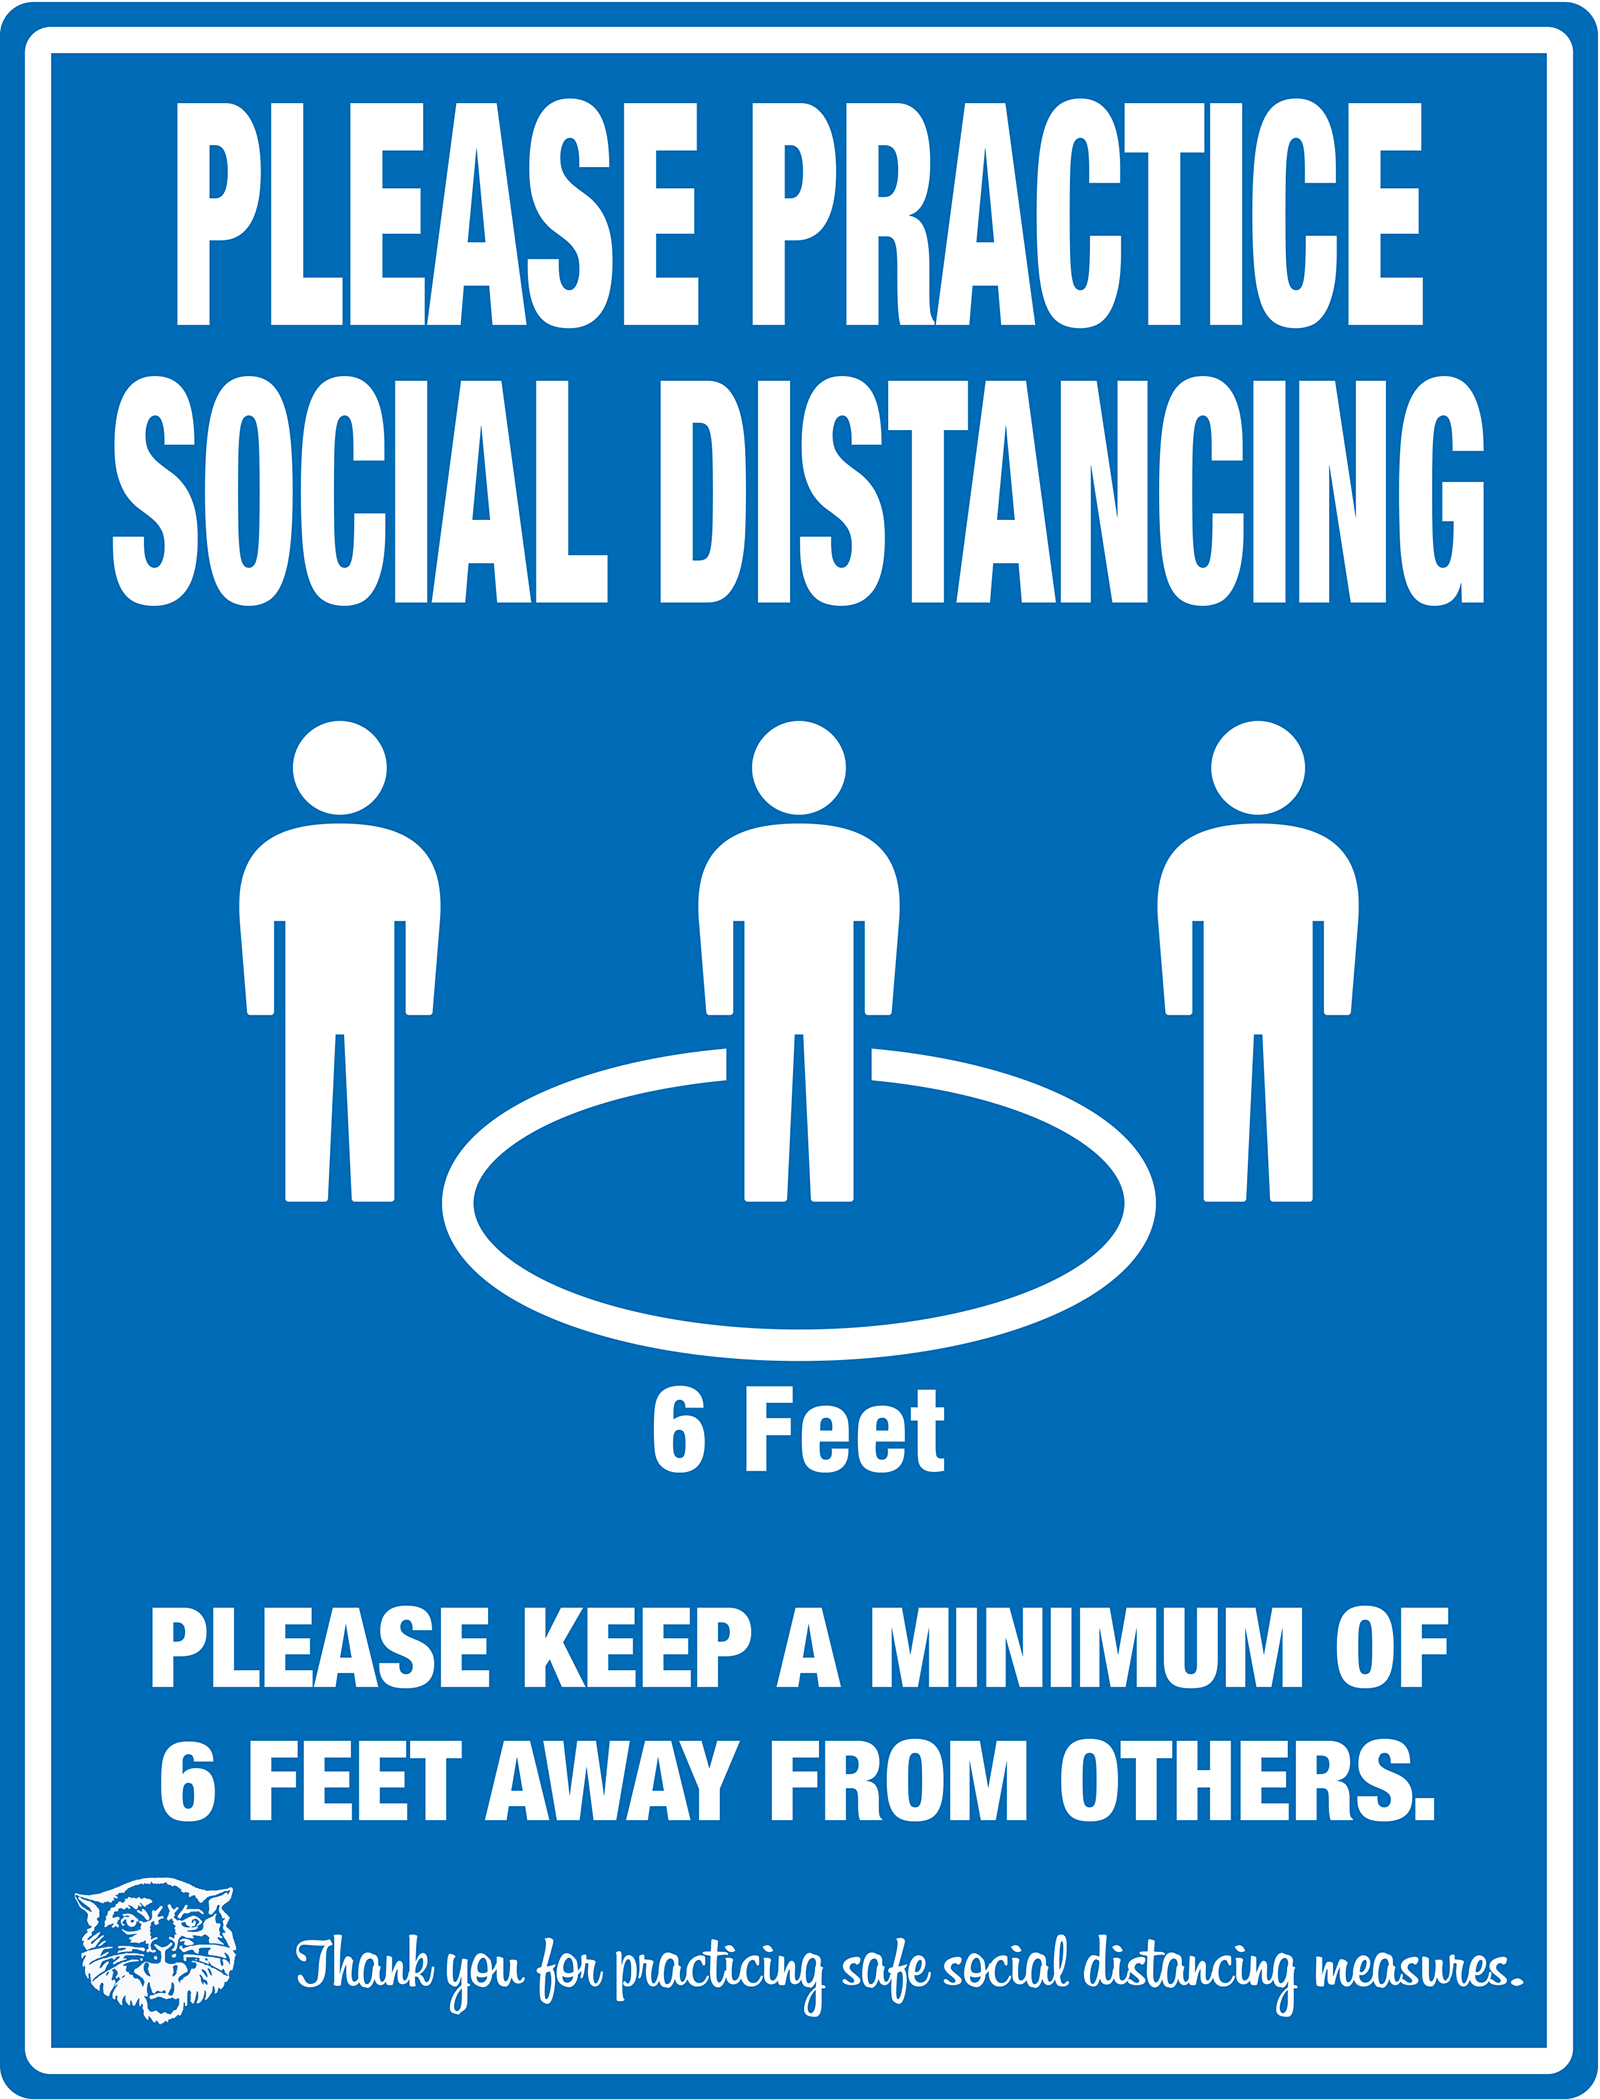 PLEASE PRACTICE SOCIAL DISTANCING PLEASE KEEP A MINIMUM OF 6 FEET AWAY FROM OTHERS. Thank you for practicing safe social distancing measures.